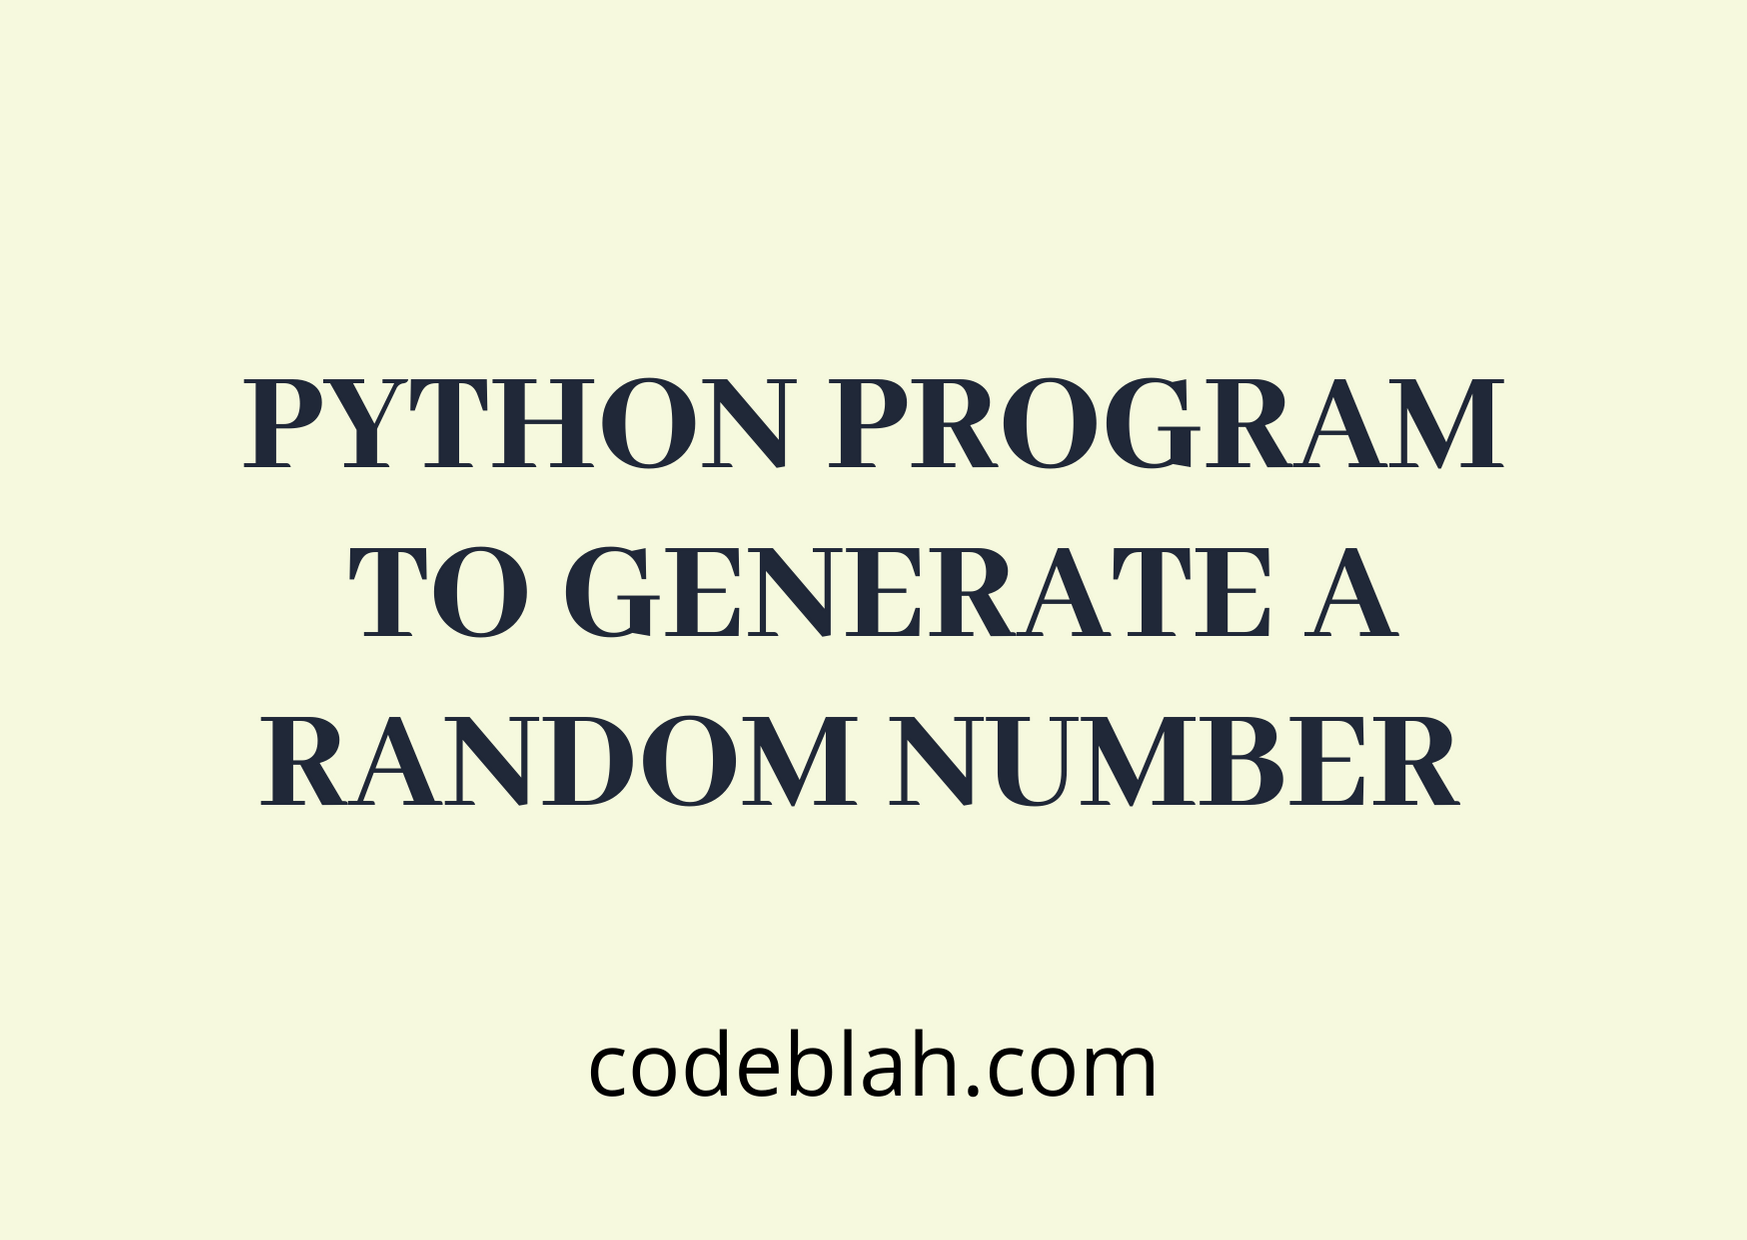 Python Program to Generate a Random Number